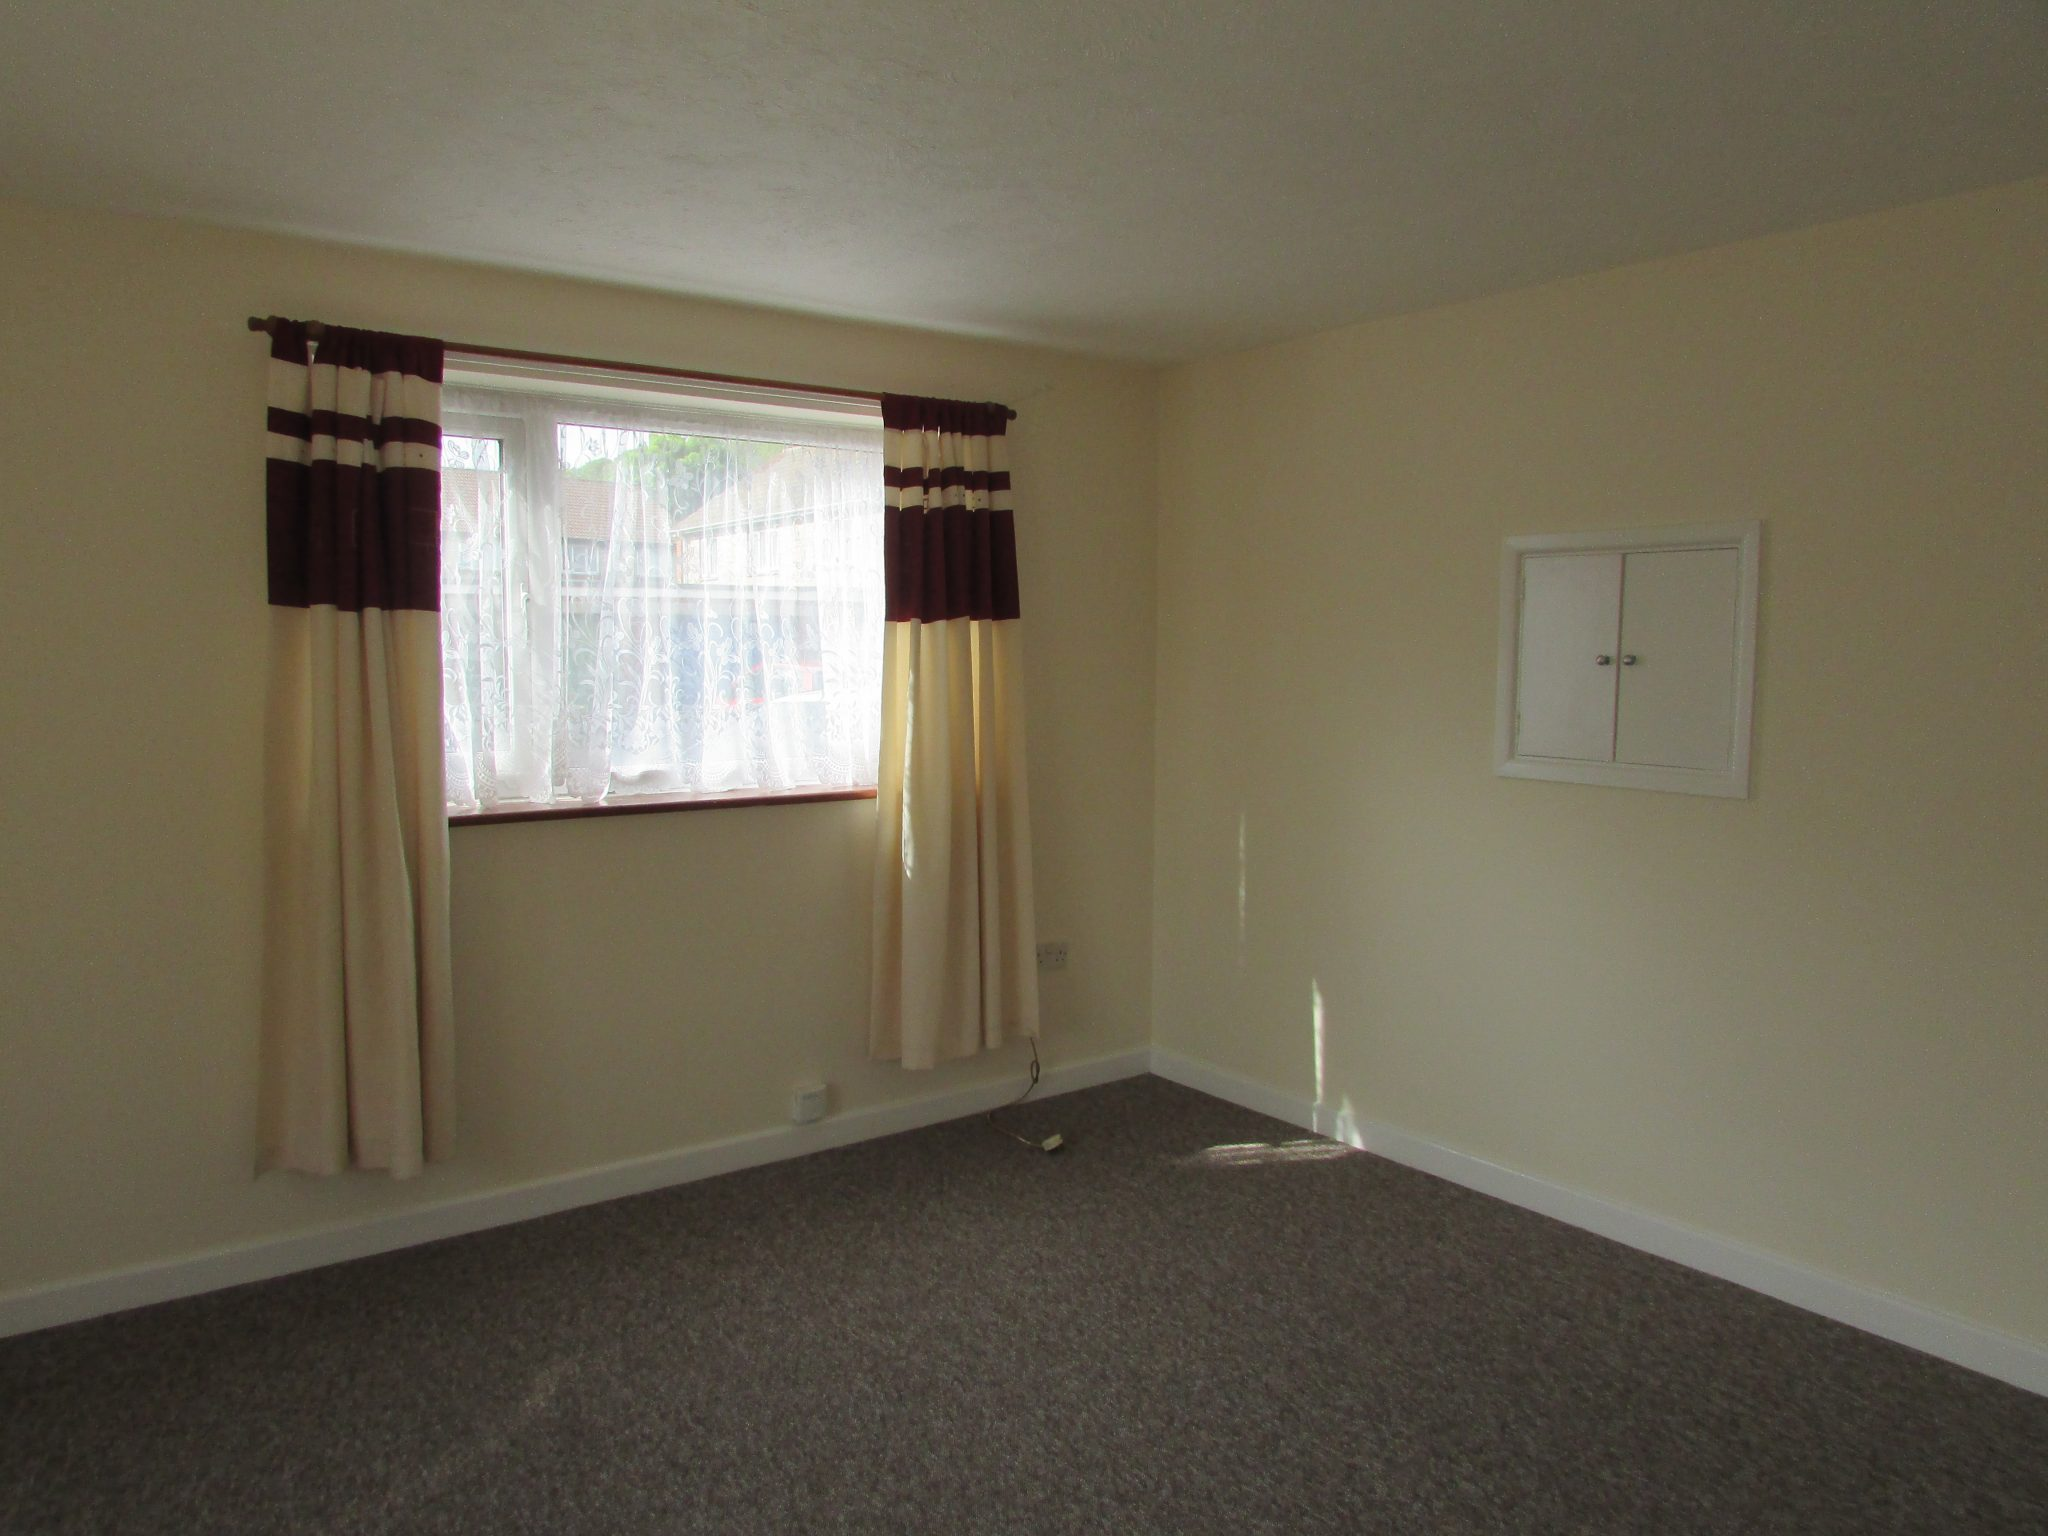 Property to rent, property to let, Warminster, Woodcock Road, John Loftus Property Centre